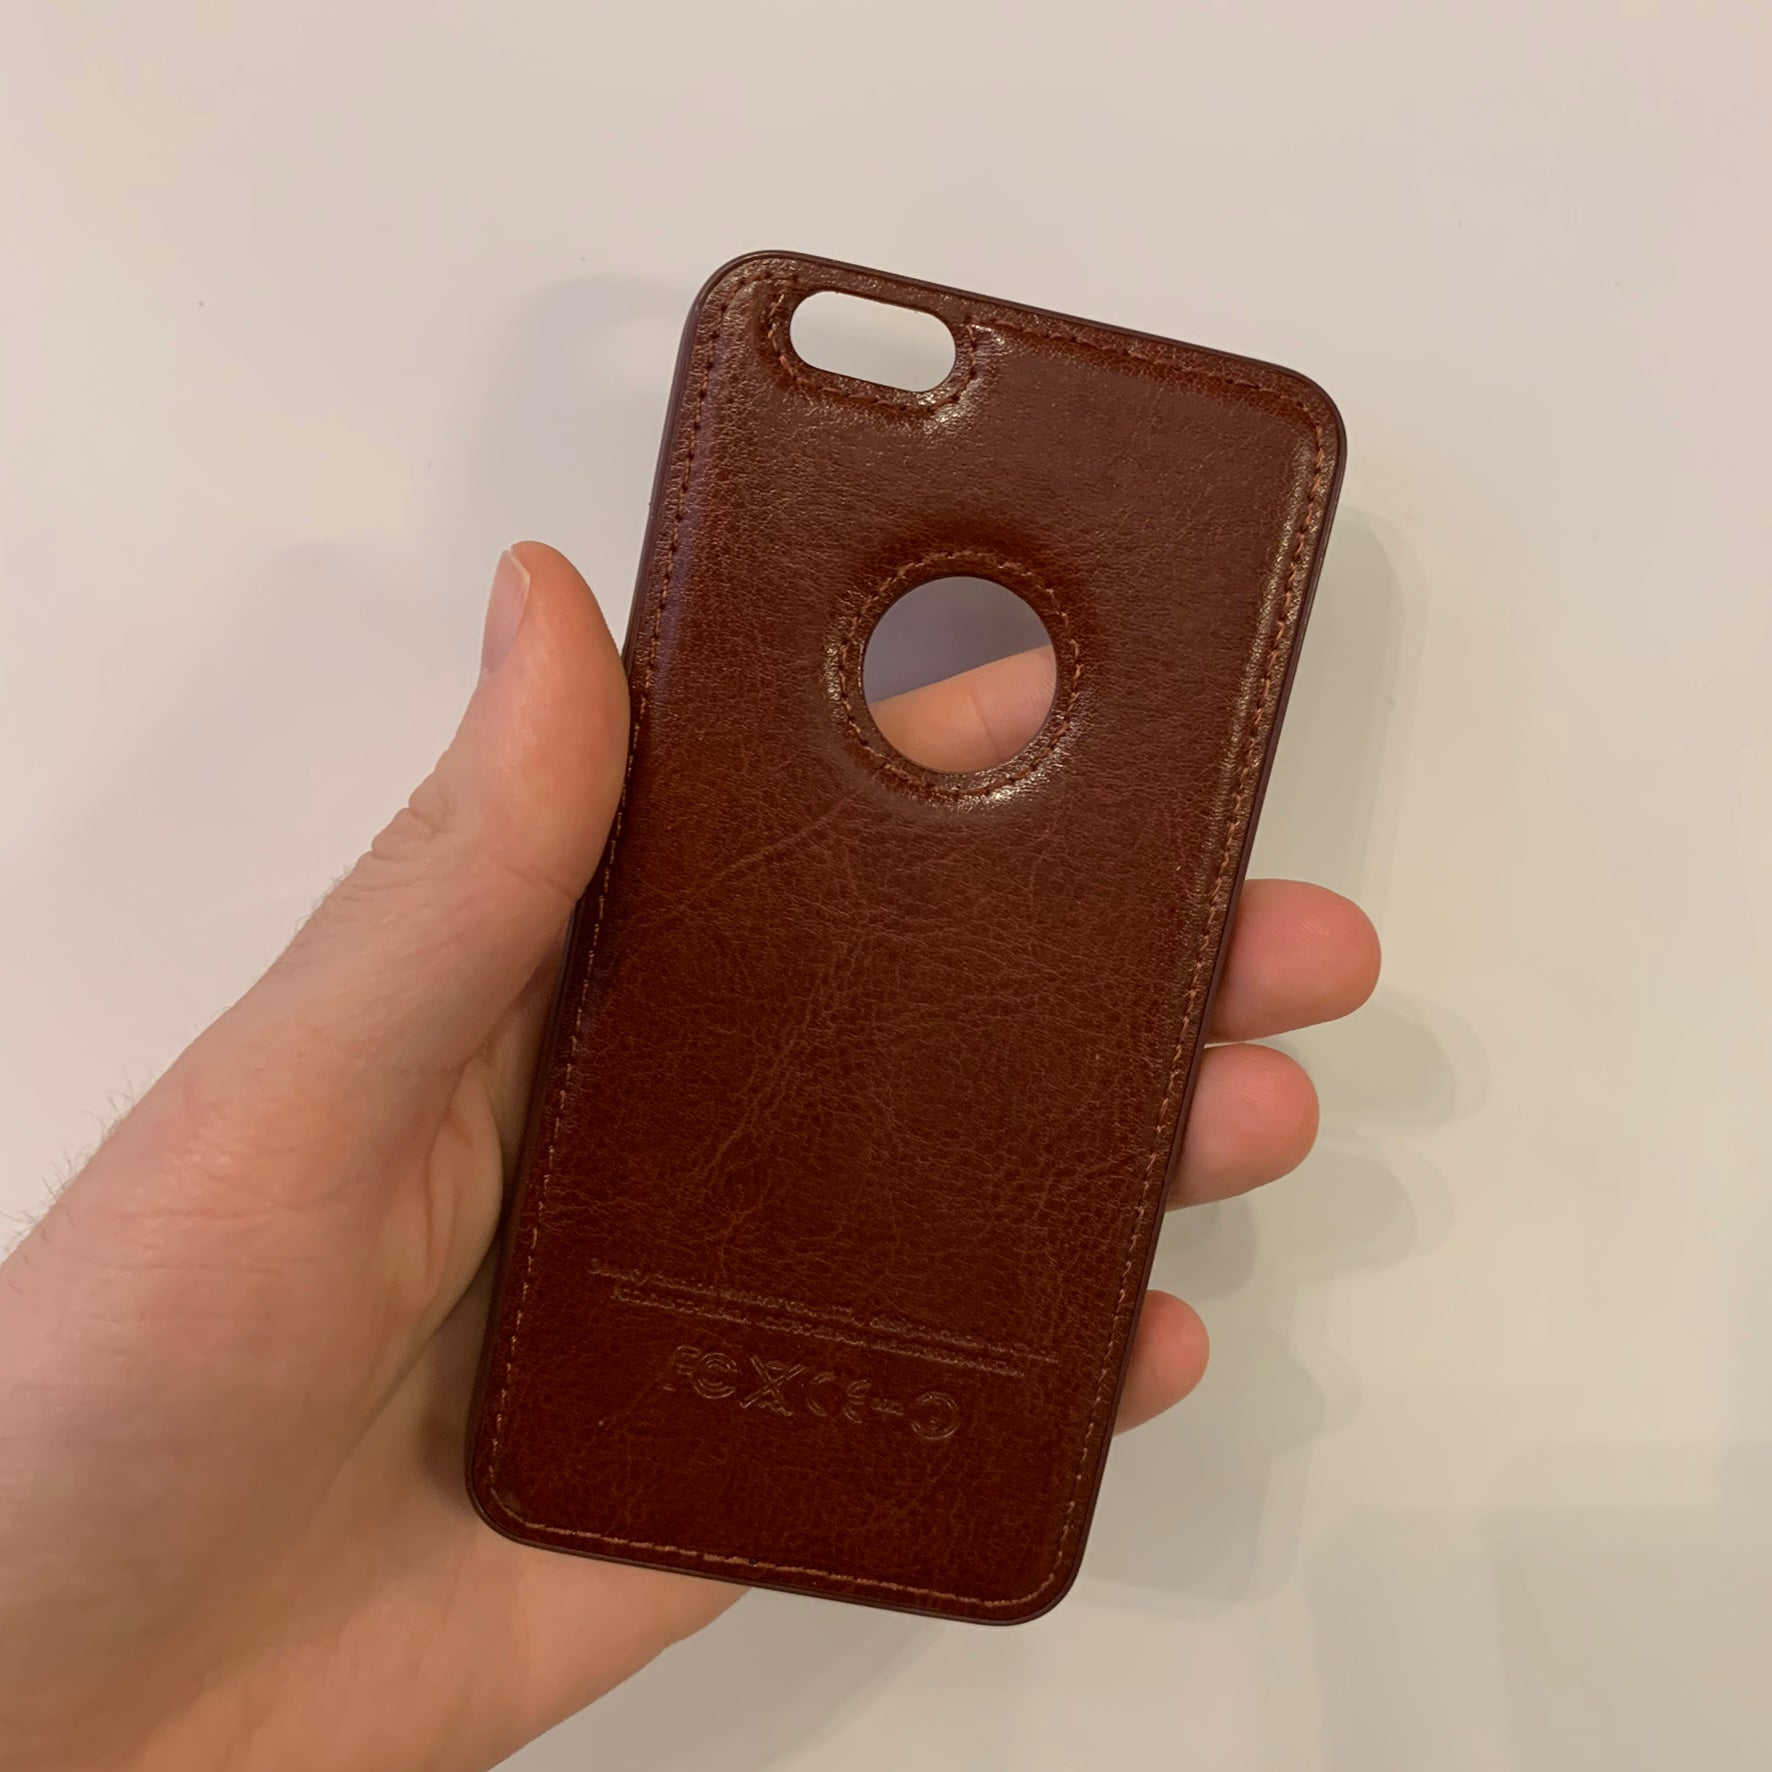 02 iPhone 6/6s Textured Case